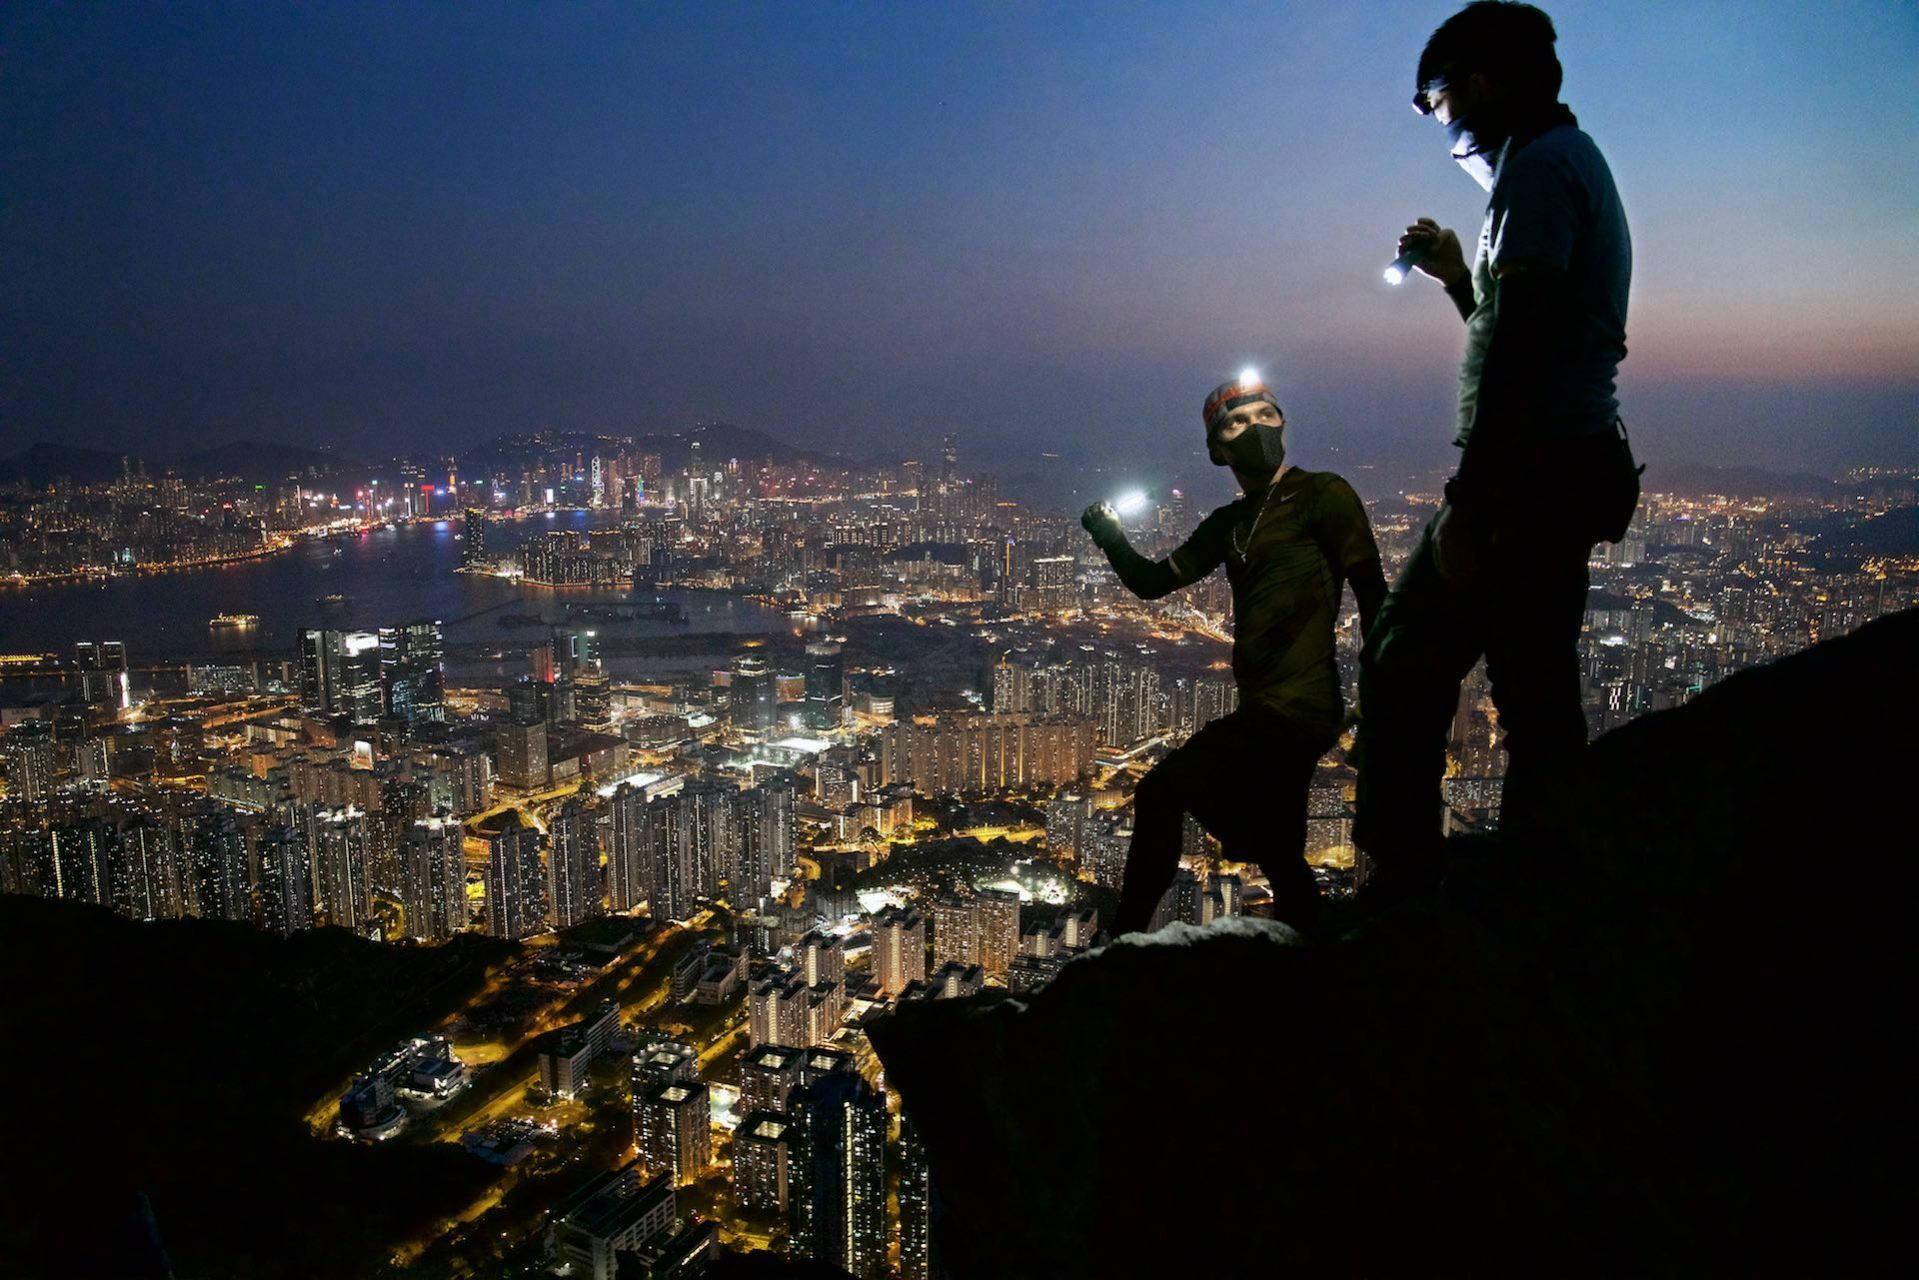 Members of Urbex, or Urban Explorers, explore Hong Kong's cityscape.